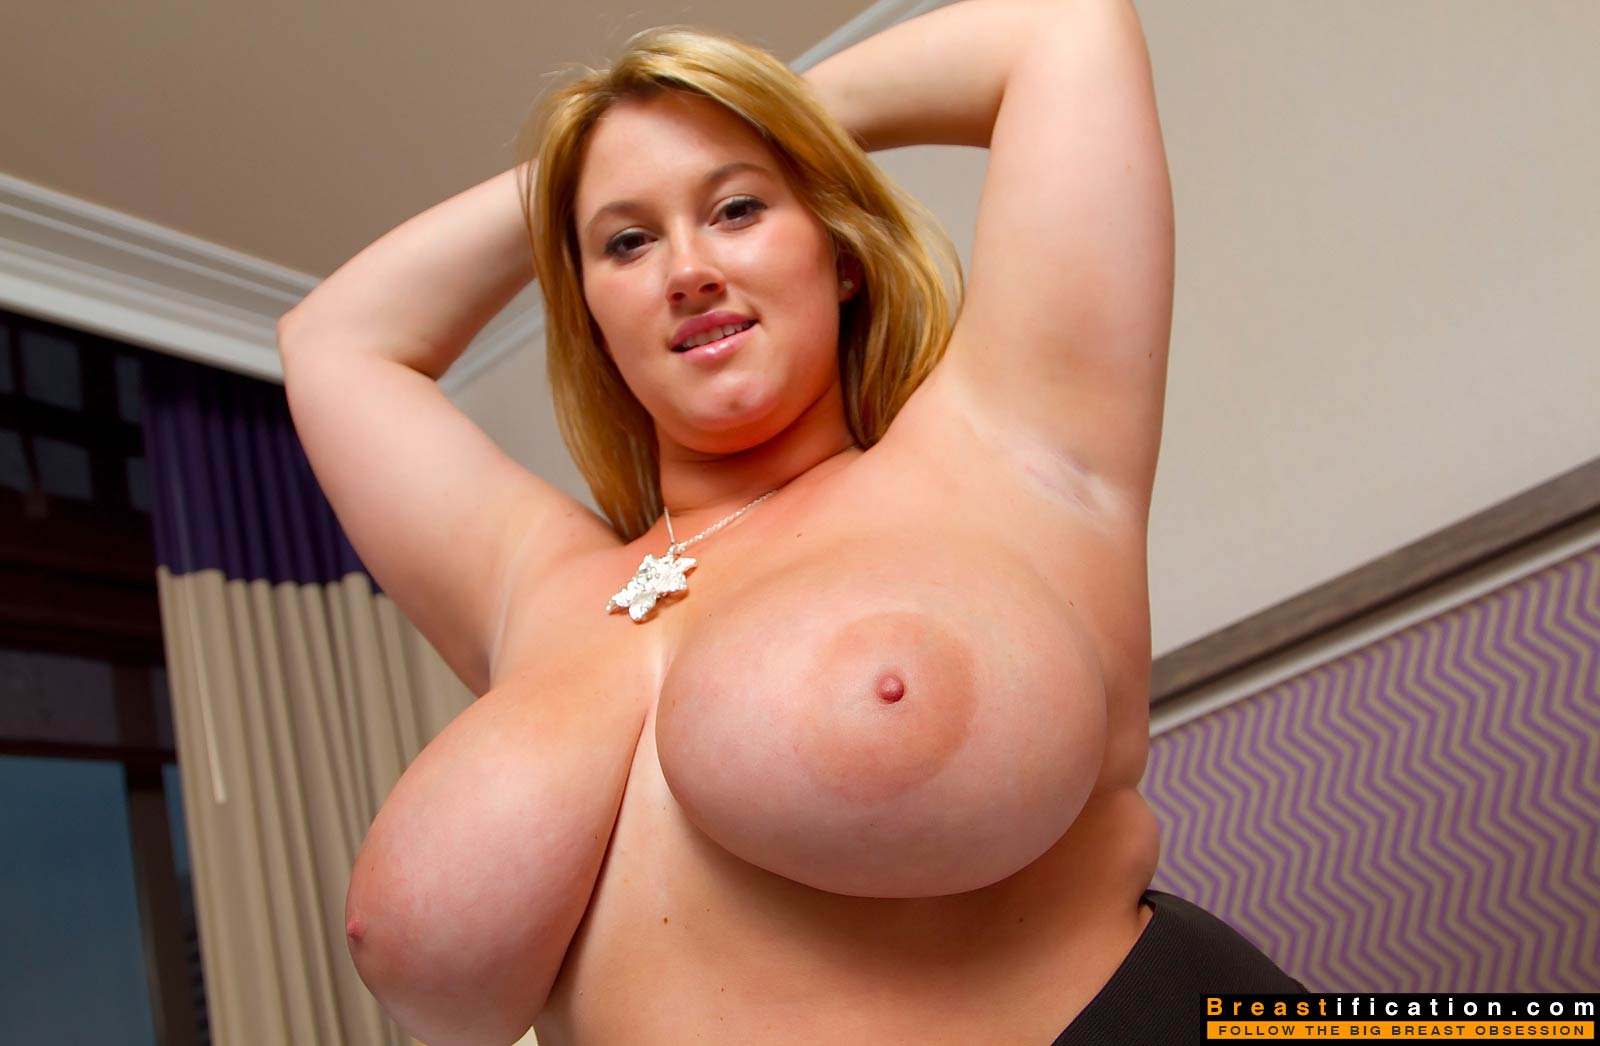 bbw porn picture galleries